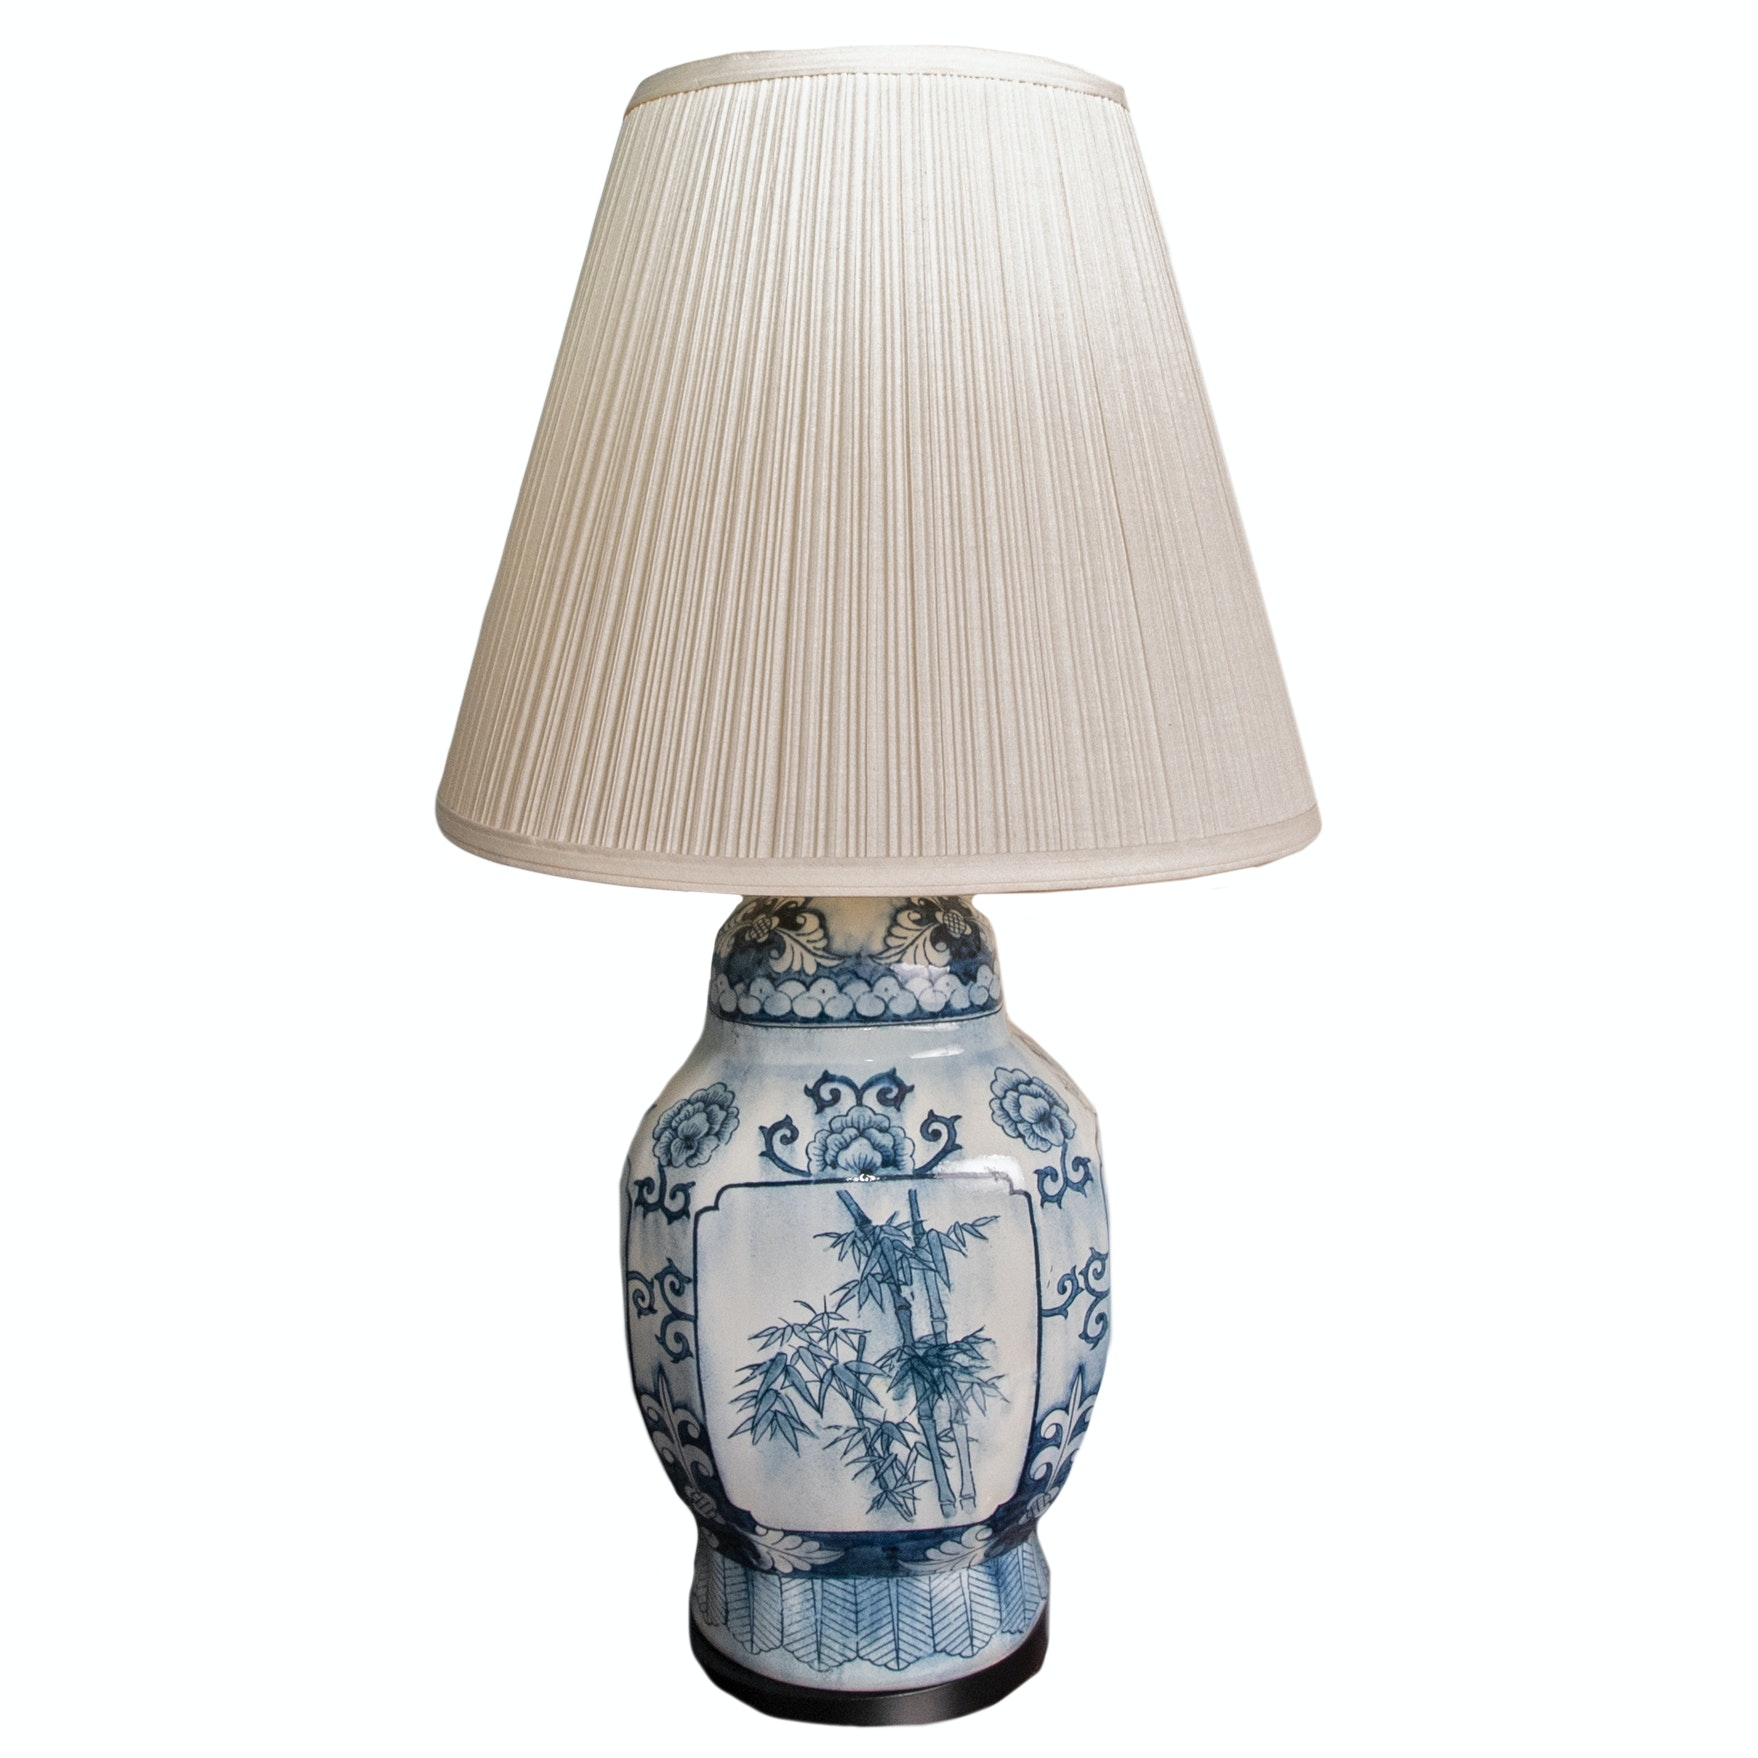 Chinese Ceramic Urn Table Lamp